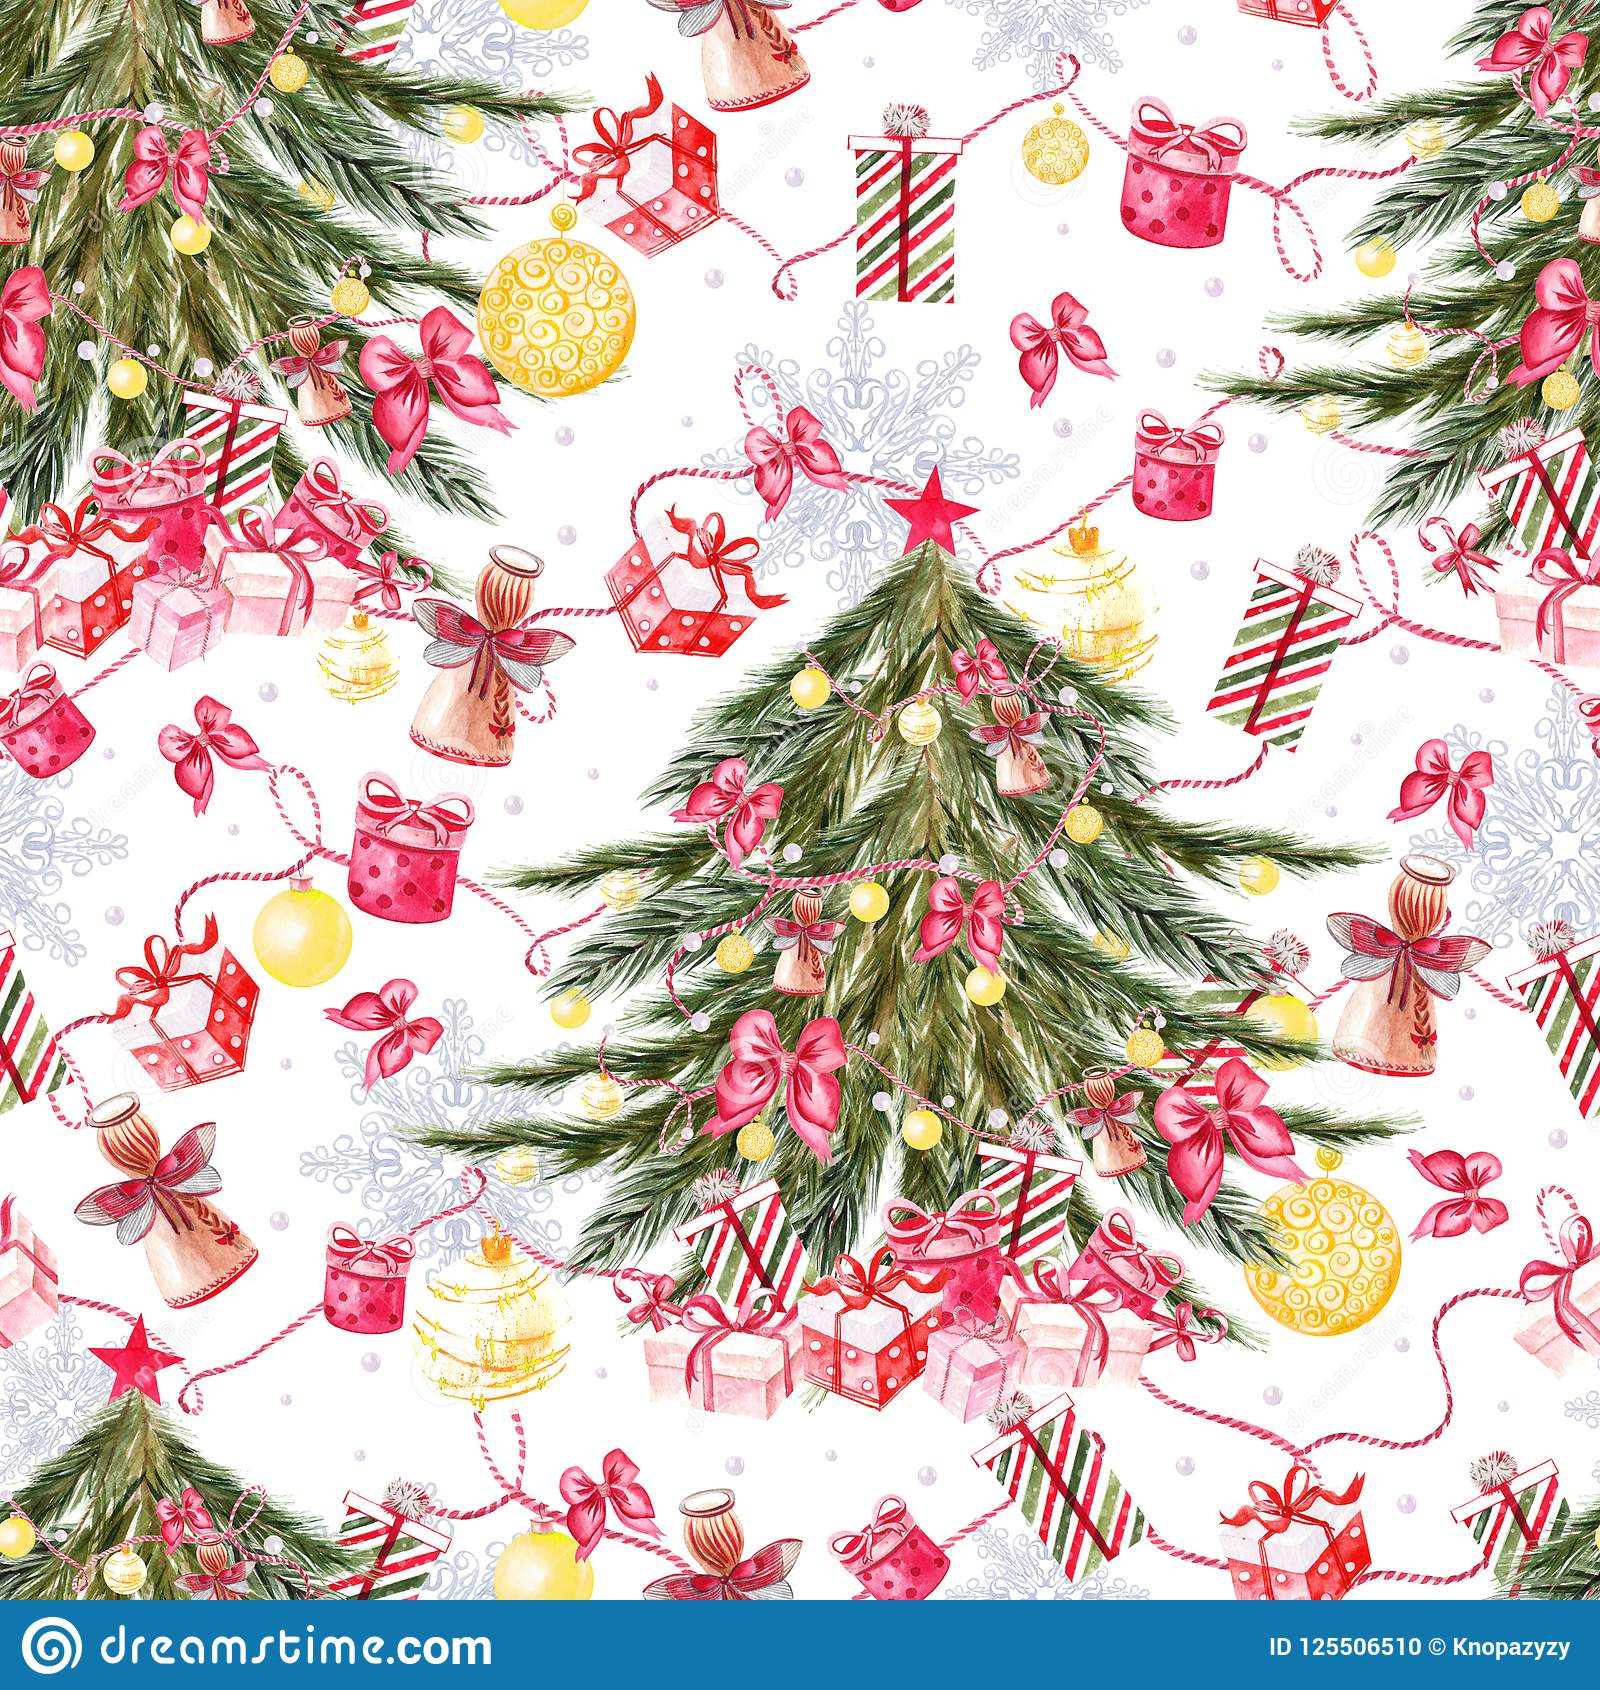 Colors Christmas.Merry Christmas Seamless Pattern With Watercolor Christmas